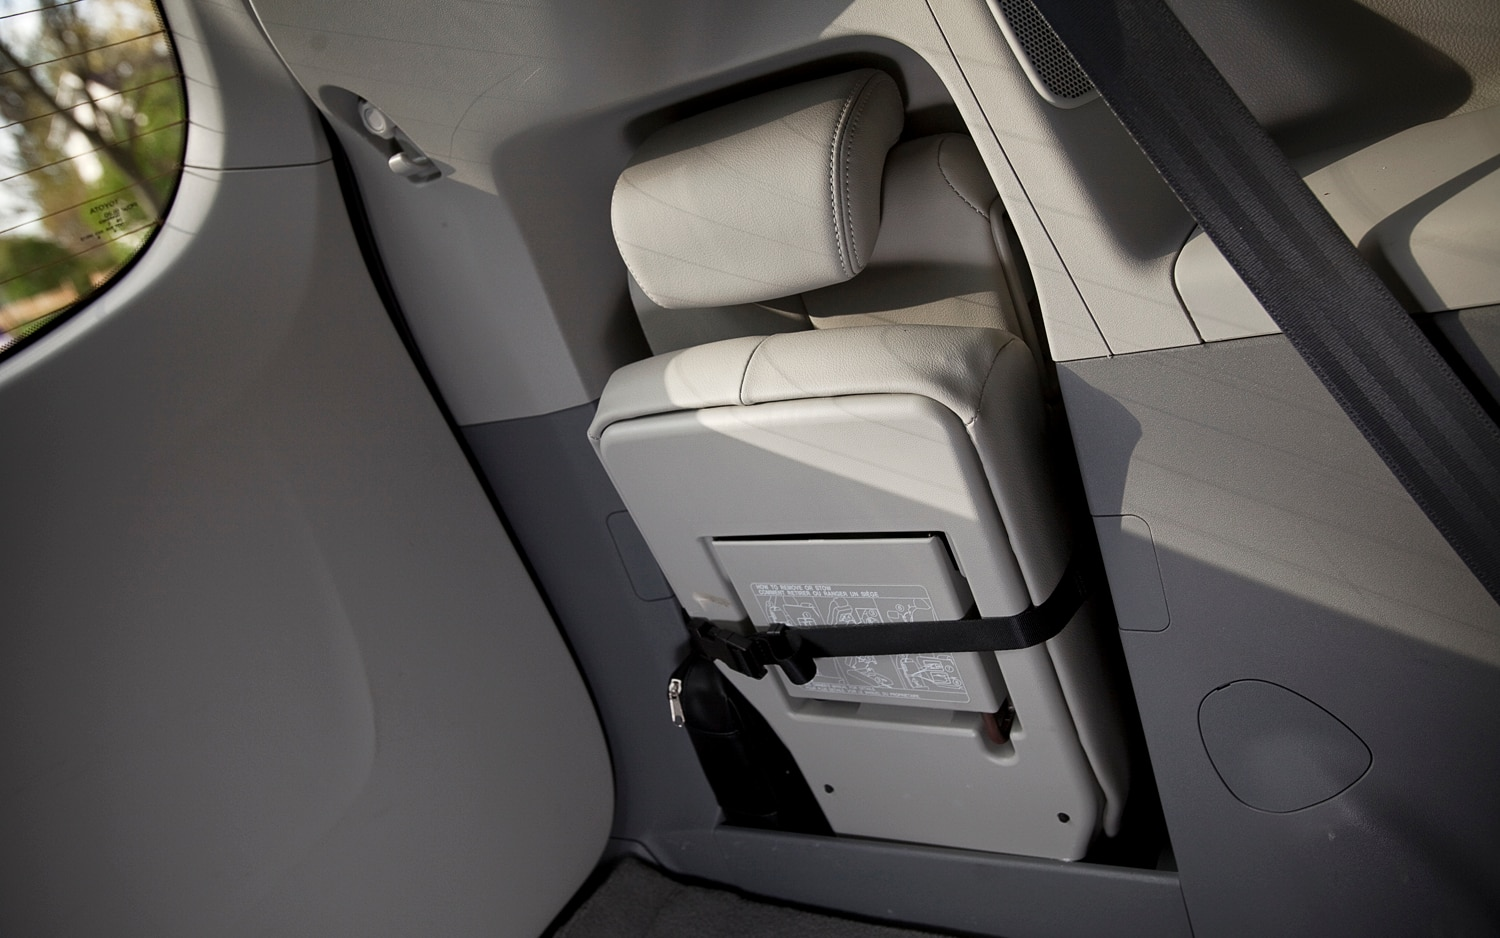 2012 toyota sienna xle editors 39 notebook automobile magazine. Black Bedroom Furniture Sets. Home Design Ideas